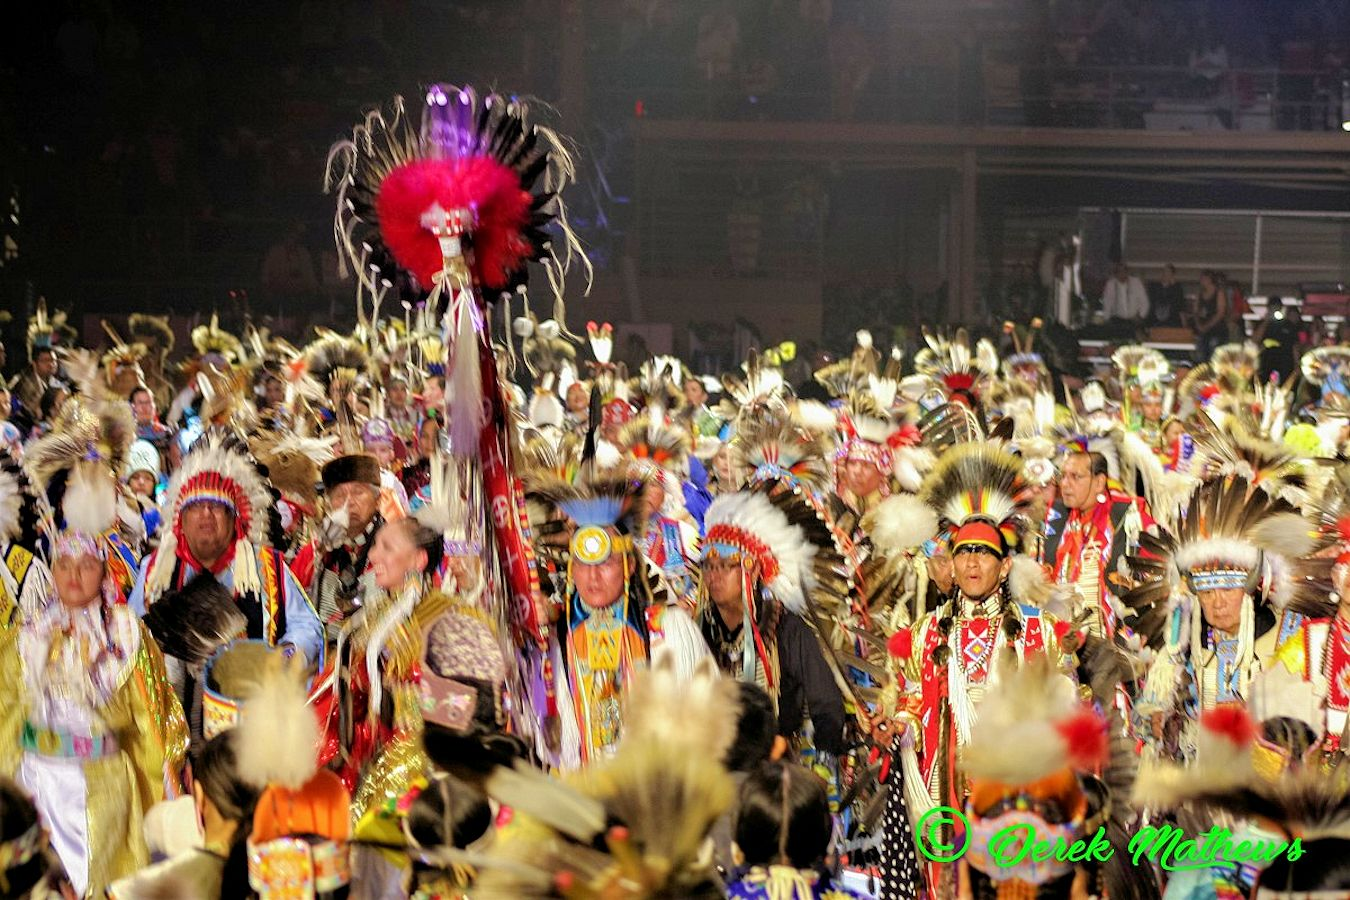 2019 Gathering of Nations Pow Wow - World's Largest Powwow